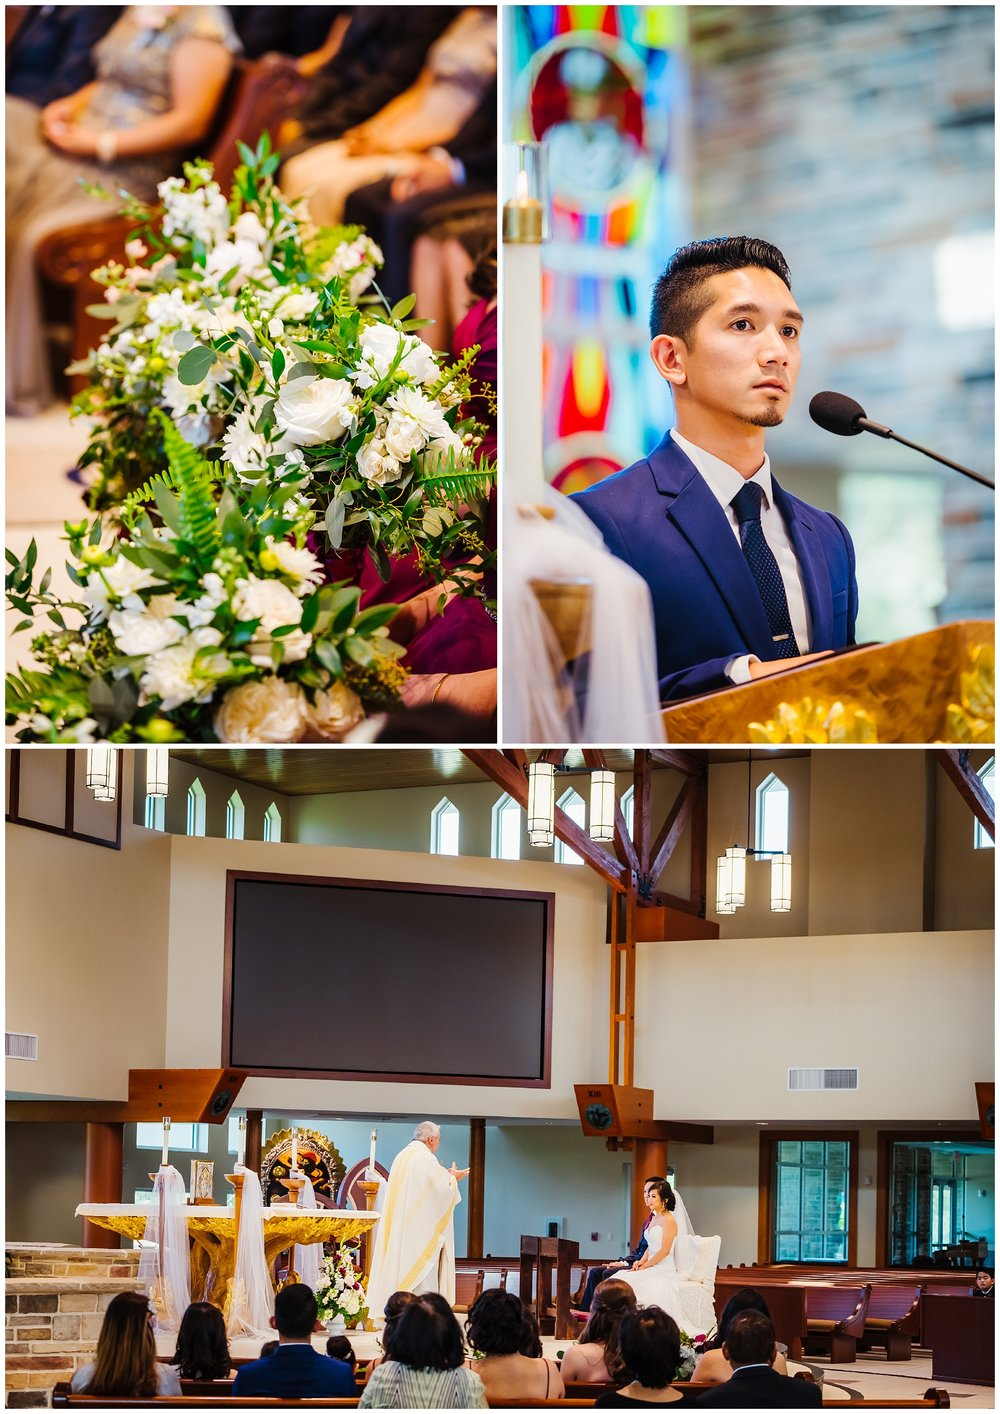 tampa-wedding-photographer-philipino-colorful-woods-ballroom-church-mass-confetti-fuscia_0034.jpg